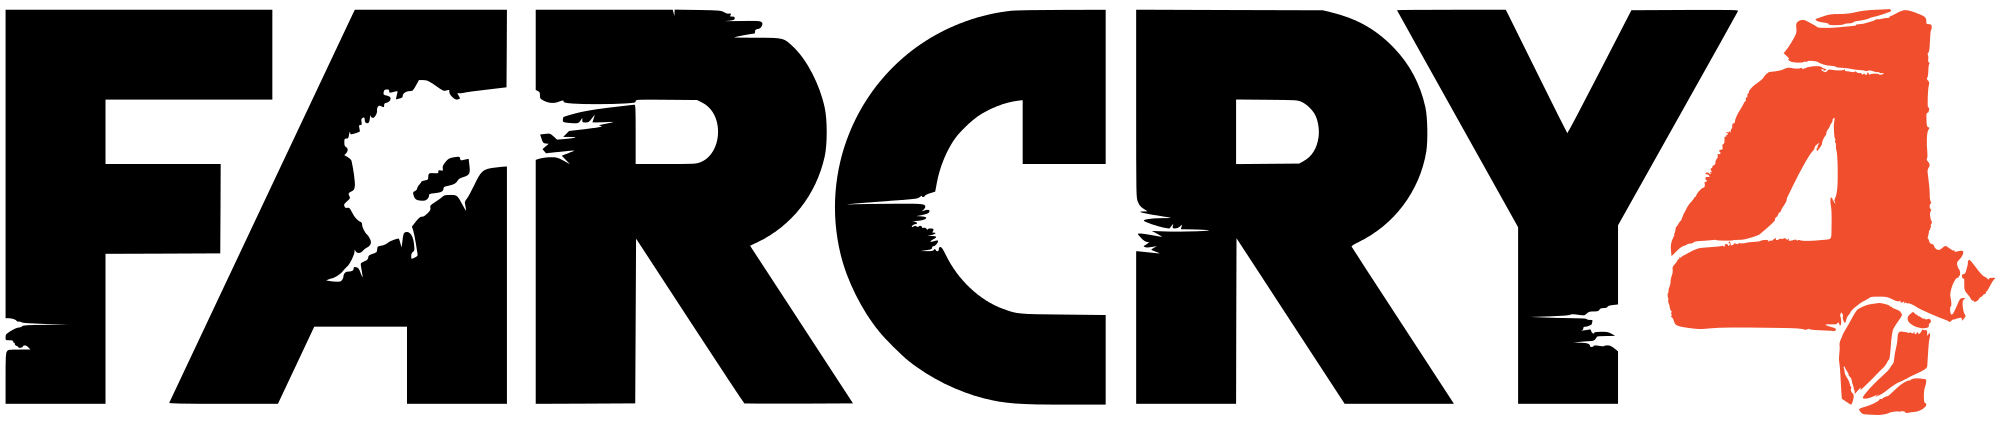 Far cry 4 logo png